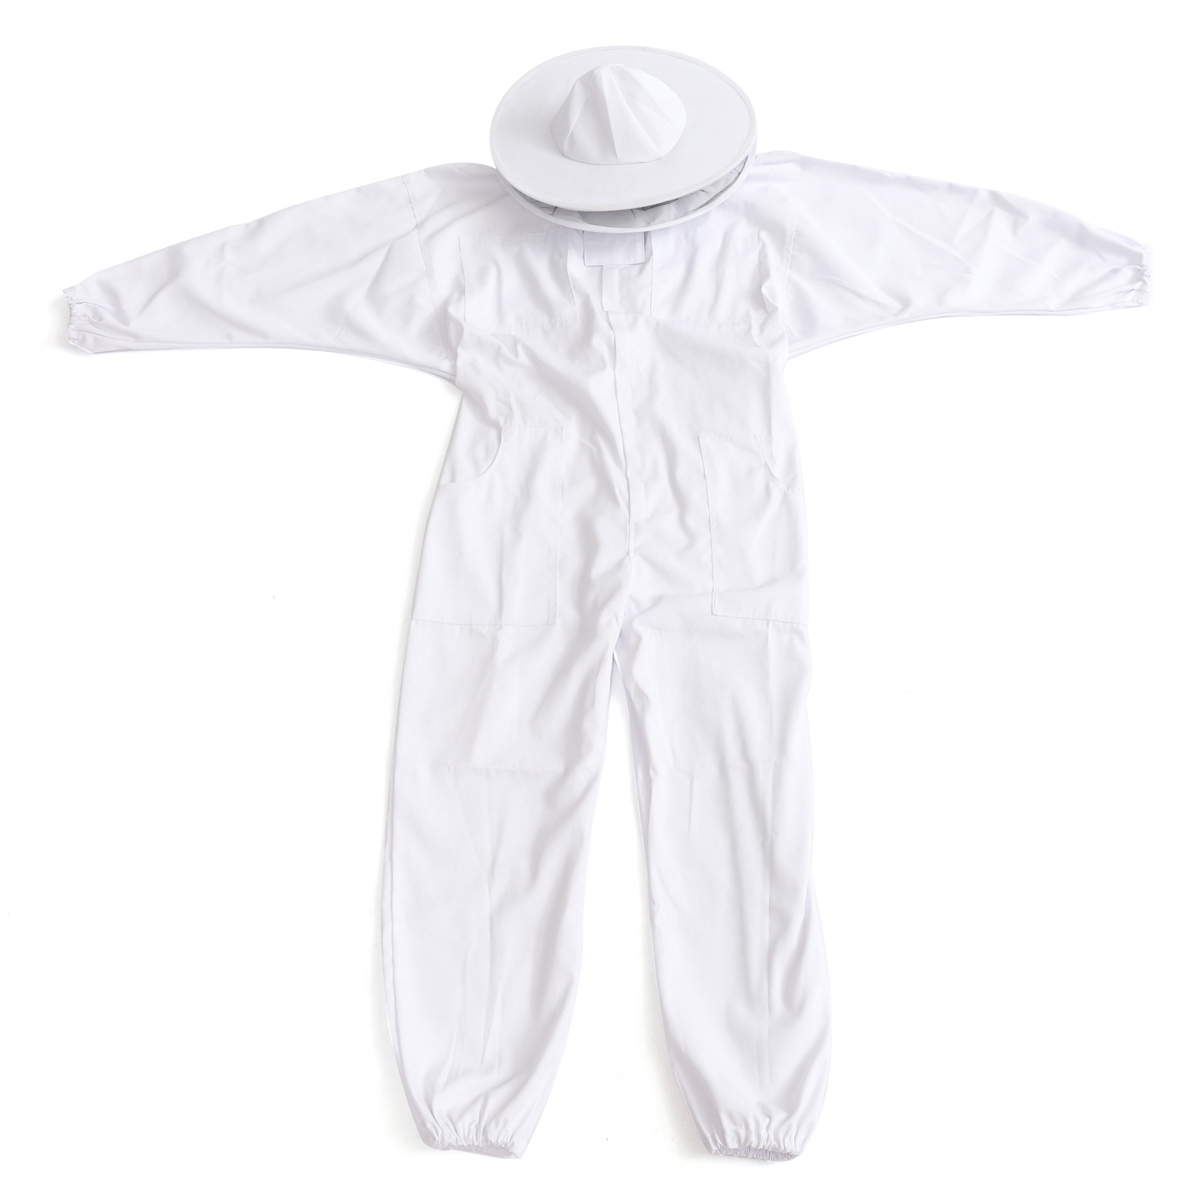 Beekeepers Bee Keeping Cotton Full Protector Suit With Veil Hat Hood Bee Suit XL XXL XXL 38